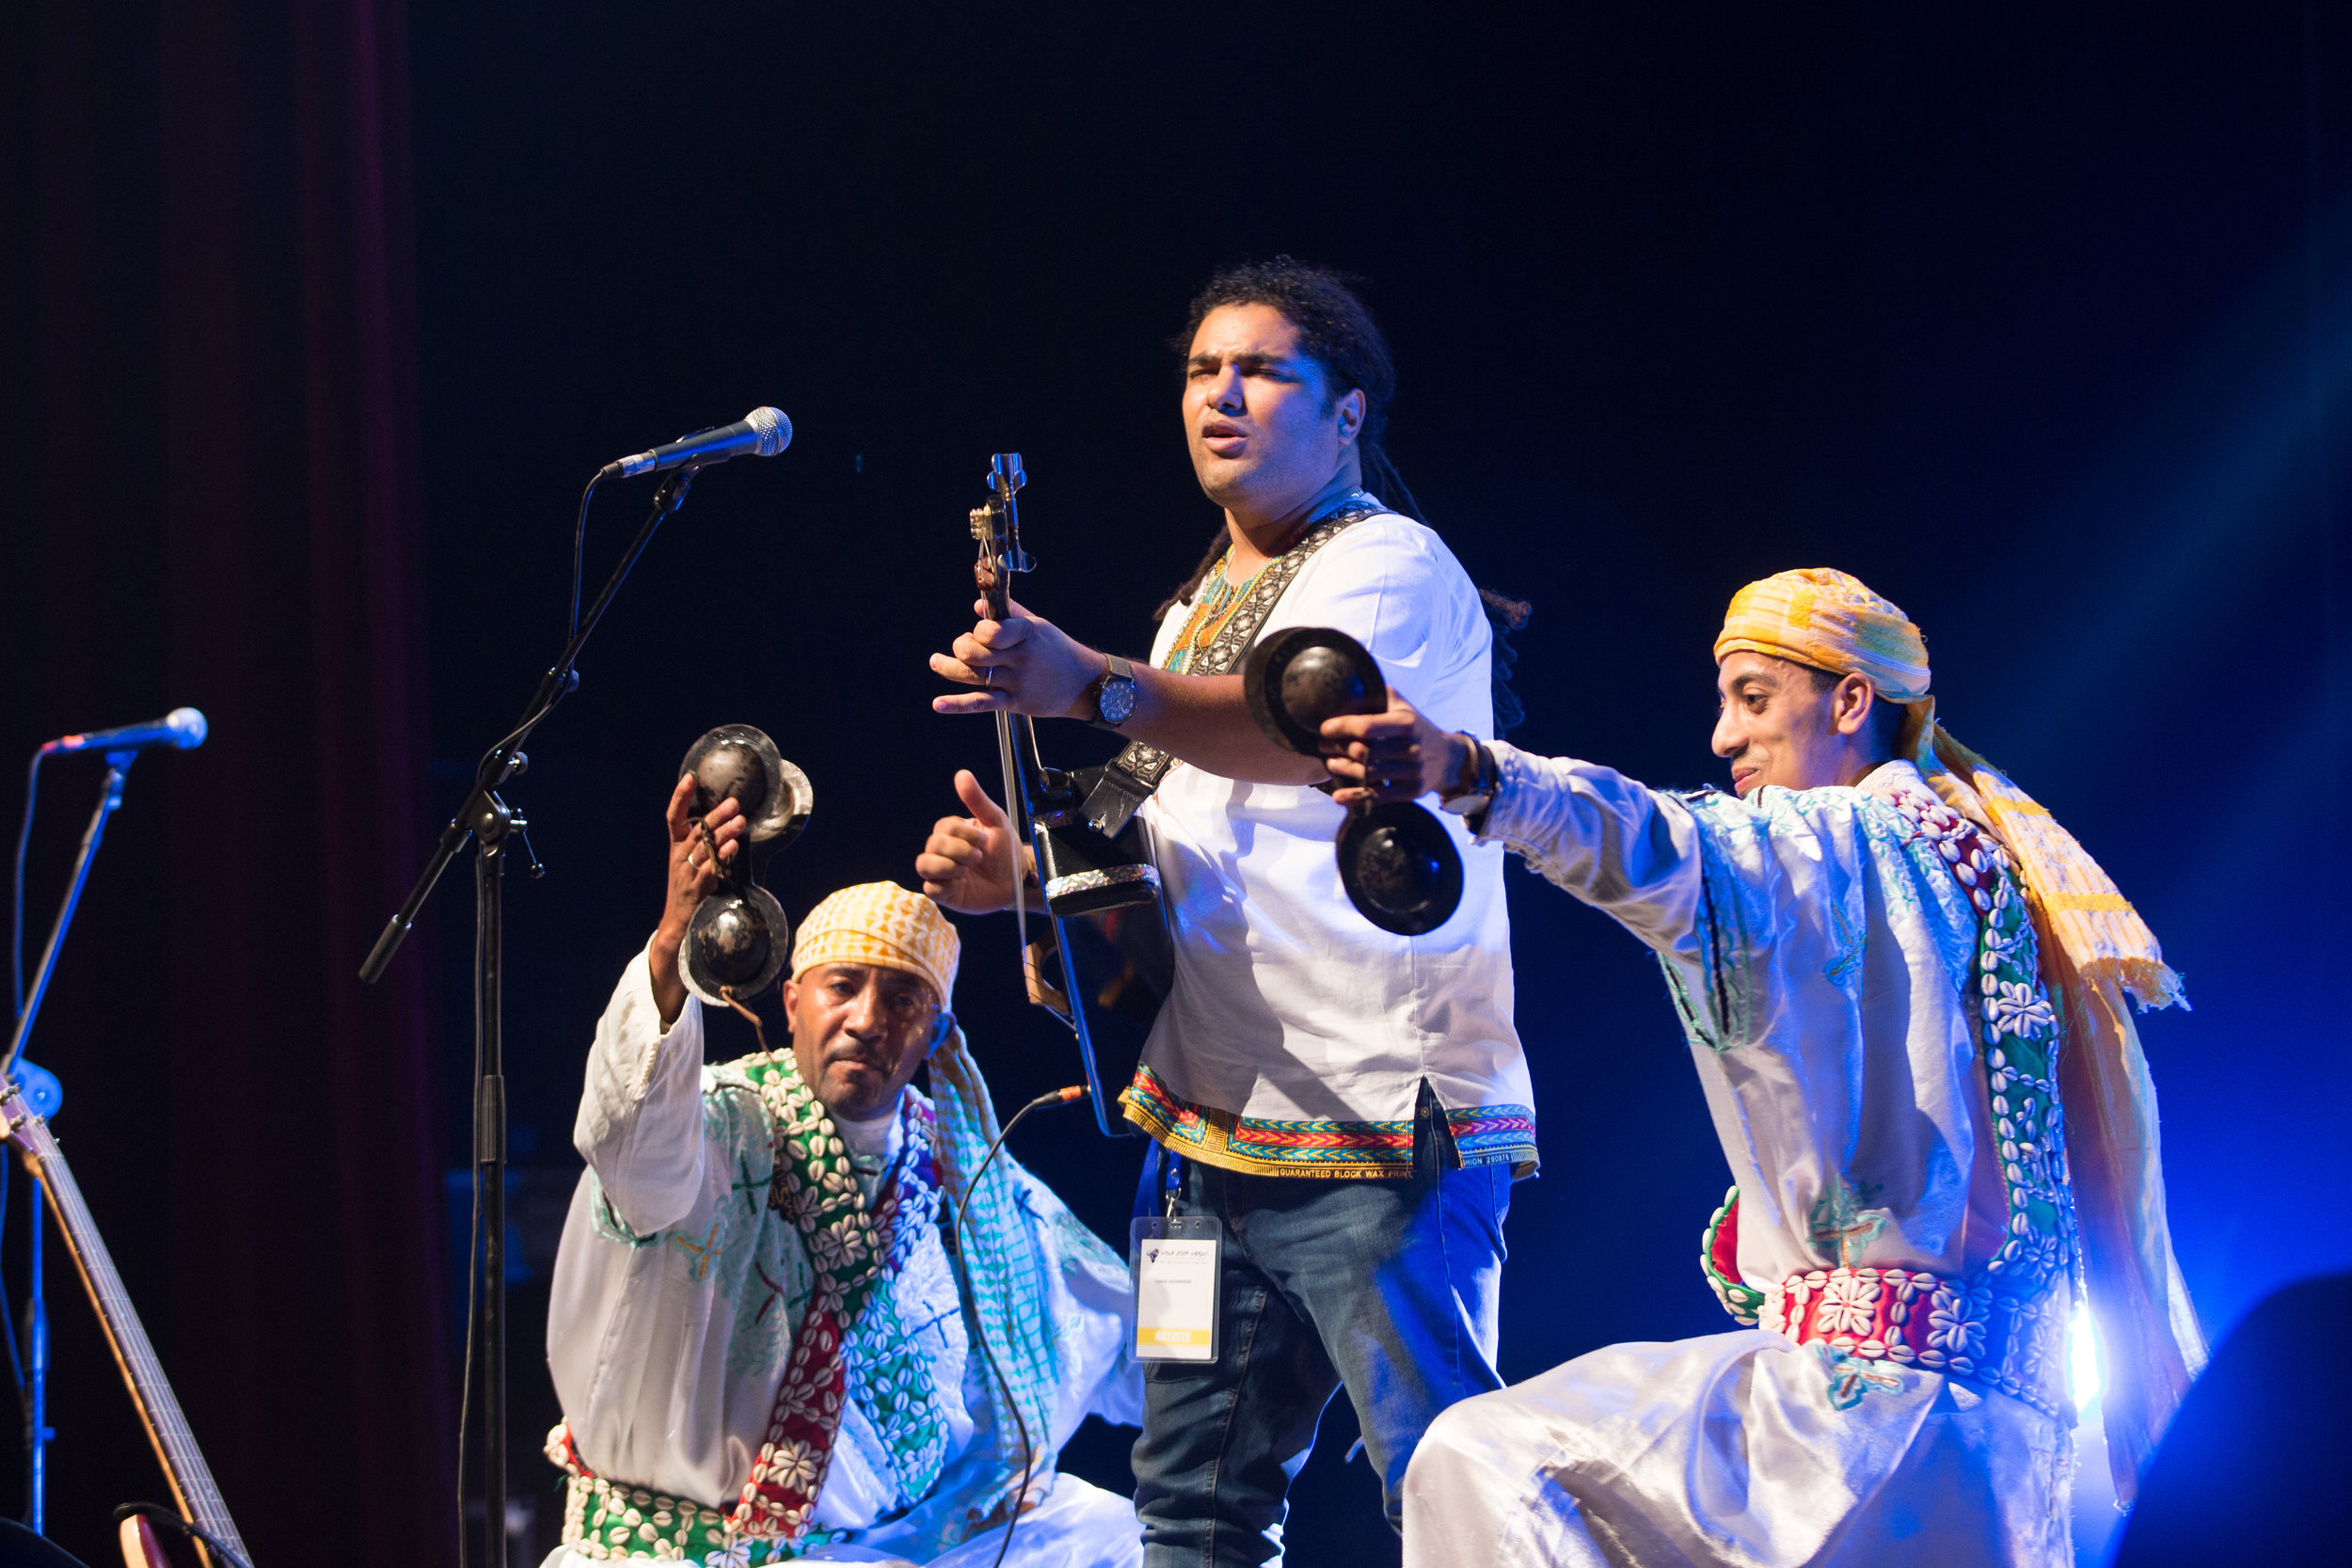 Farid Ghannam, a Moroccan singer from the Gnawa tradition performing onstage at the Mohammed 5 Theater during the Visa For Music Conference and showcase